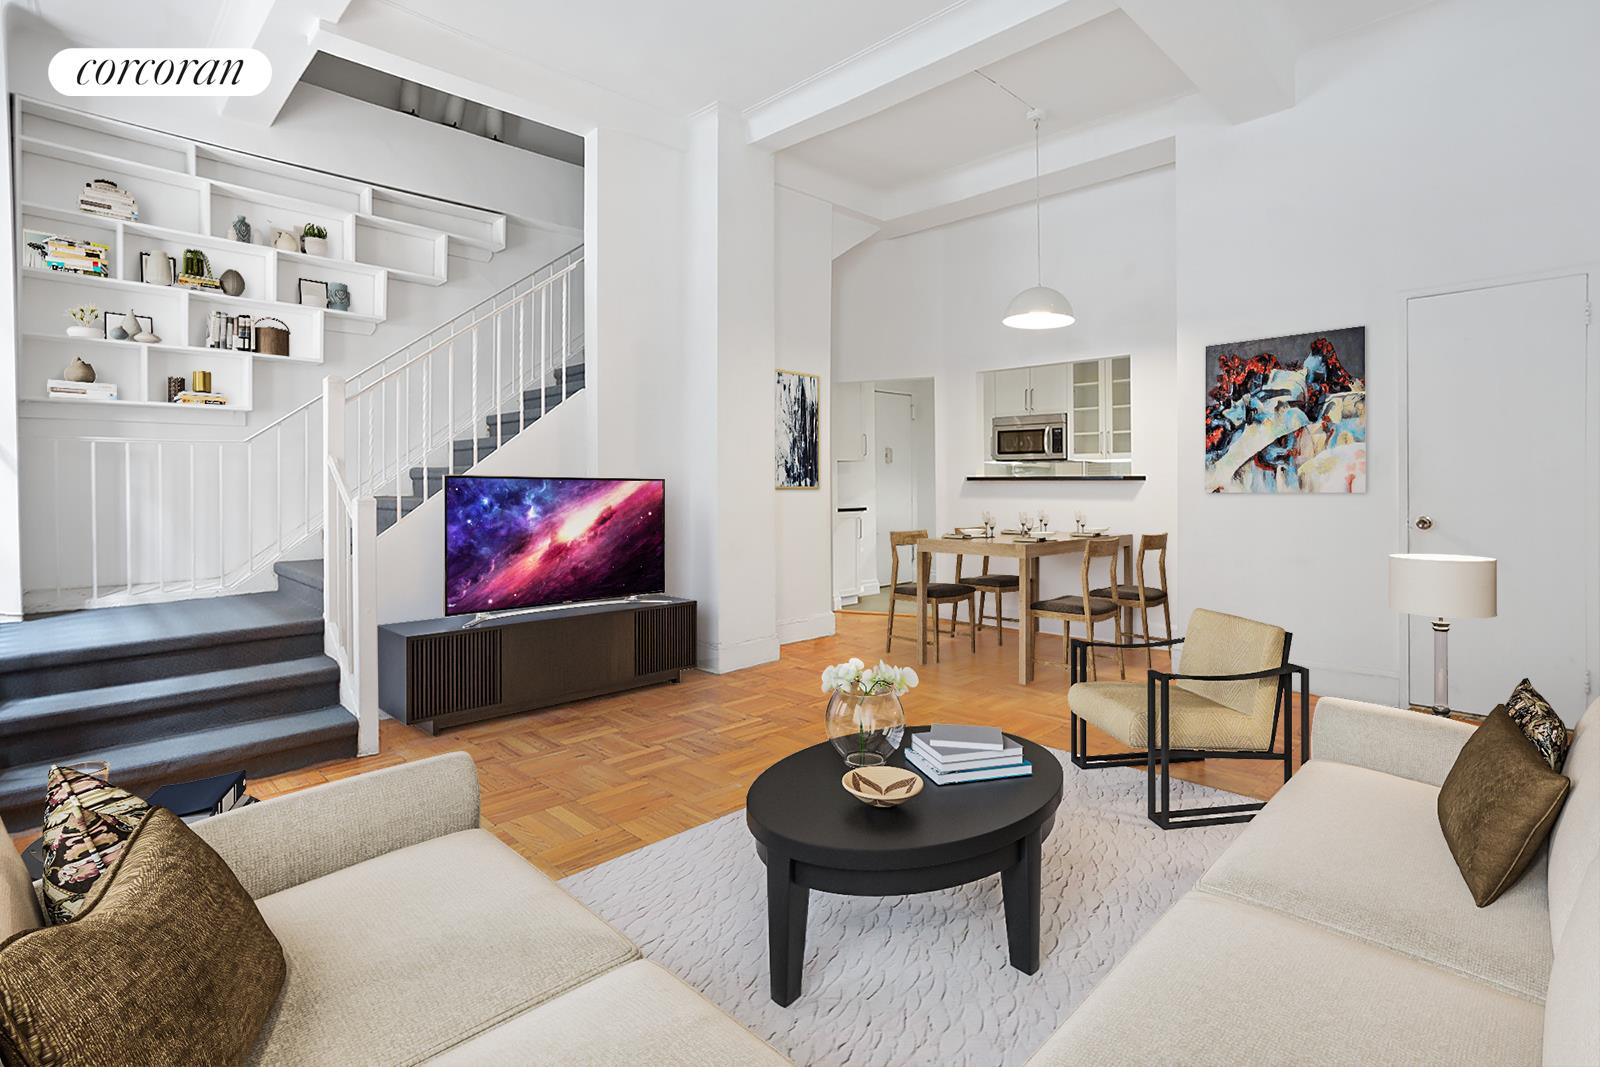 127 West 79th Street 1C/2C Upper West Side New York NY 10024